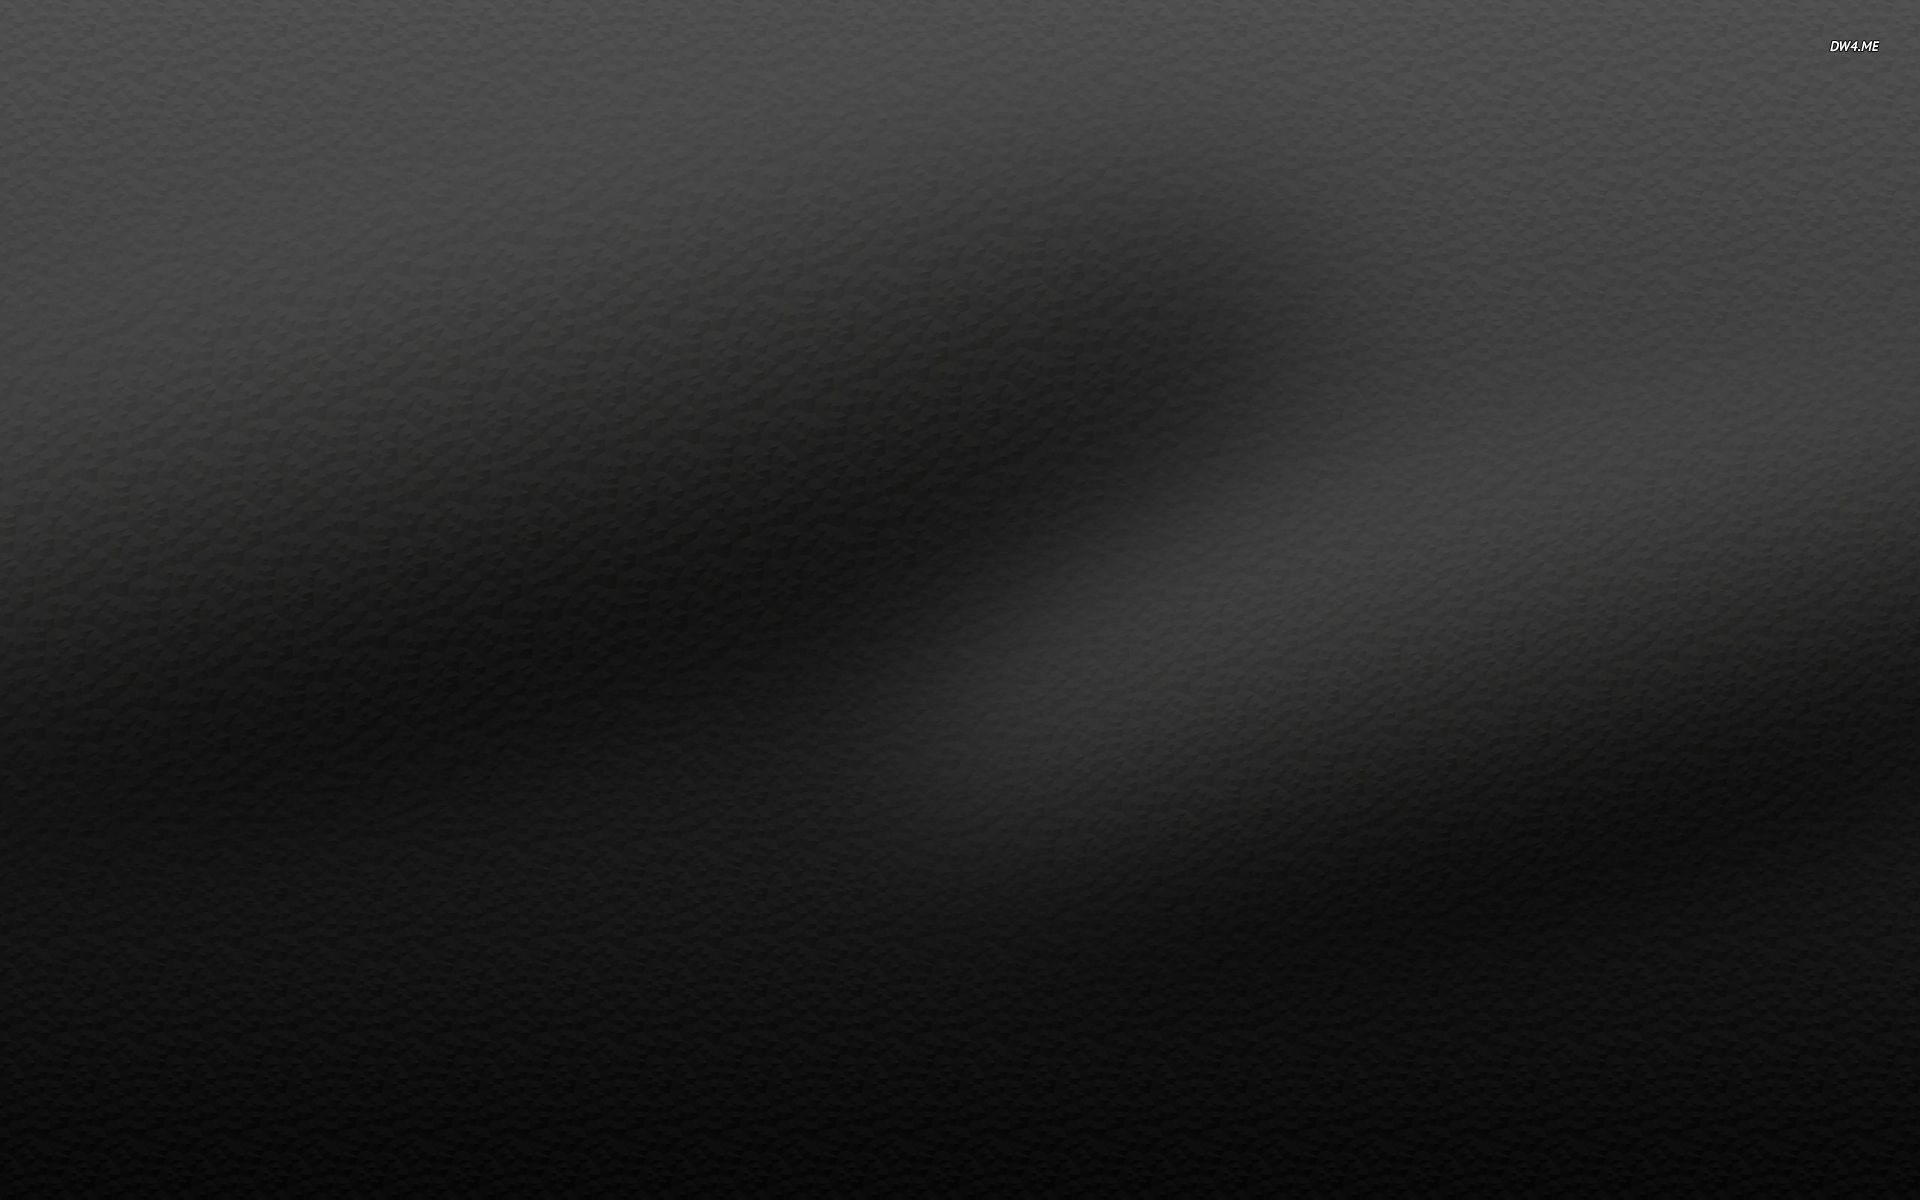 Black leather wallpaper   Minimalistic wallpapers   167 1920x1200